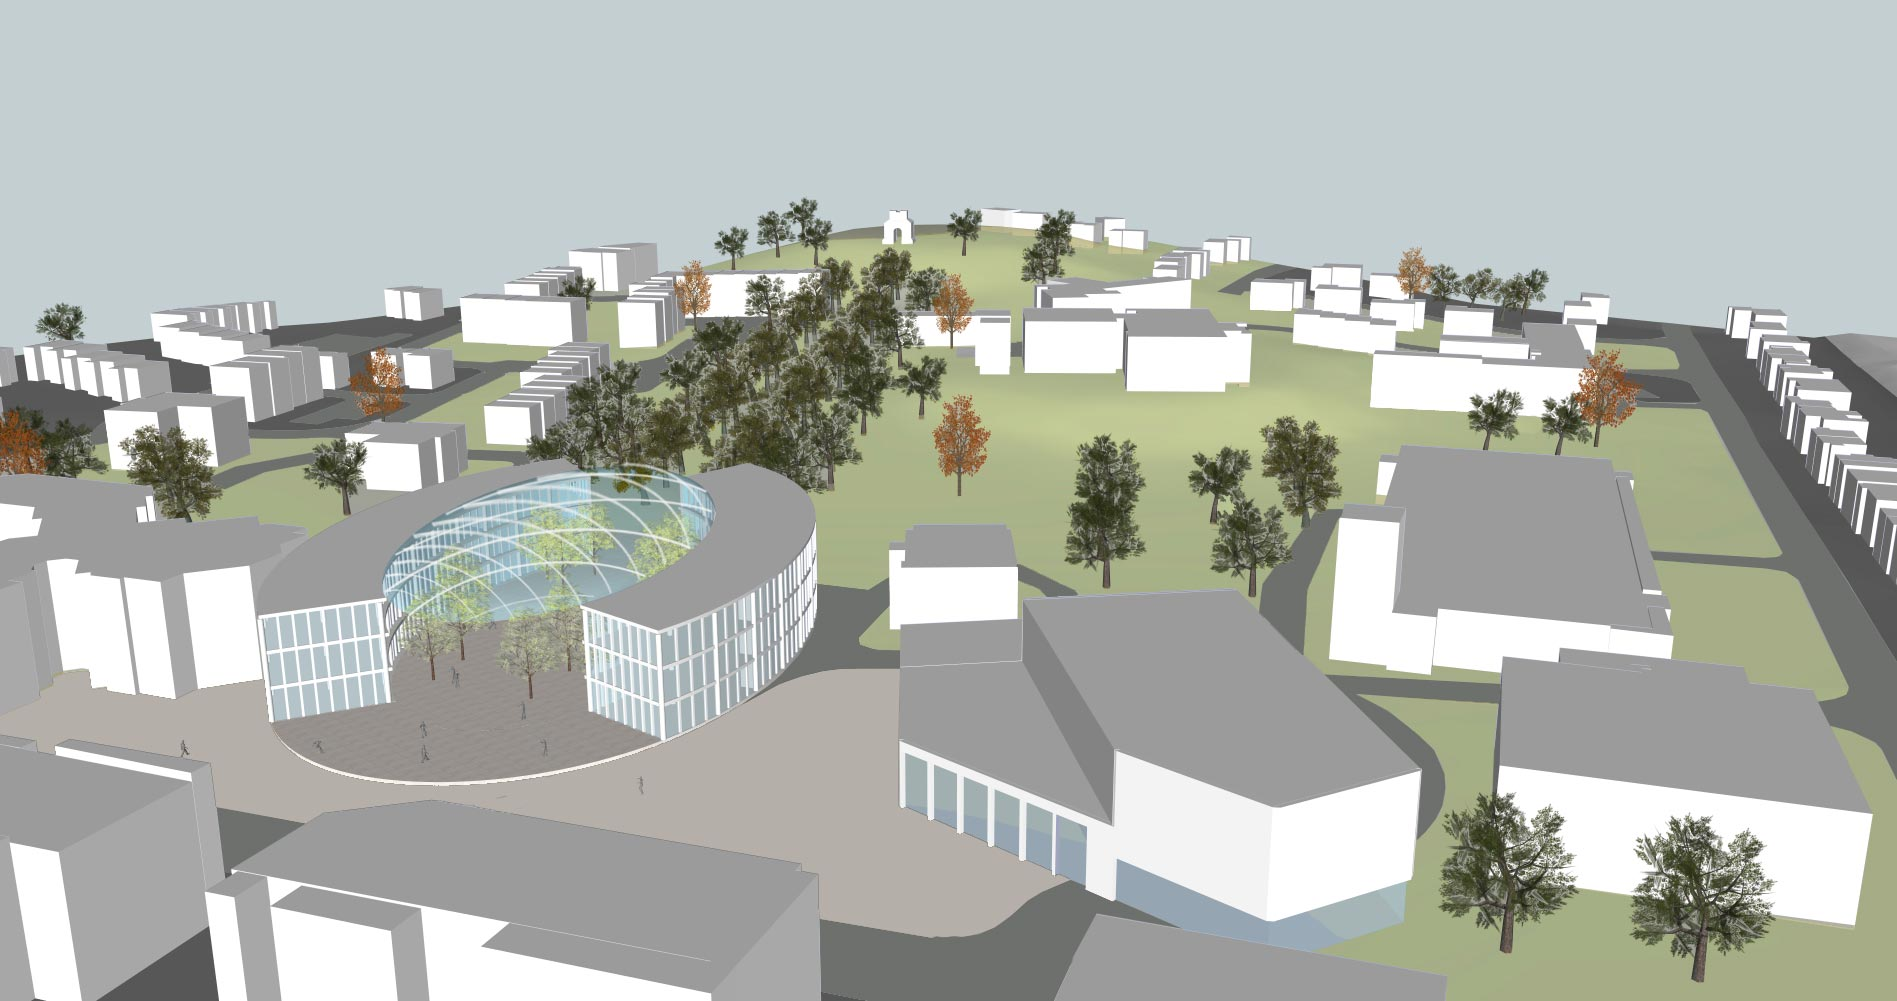 Camberley Cultural Quarter Masterplan - Top view